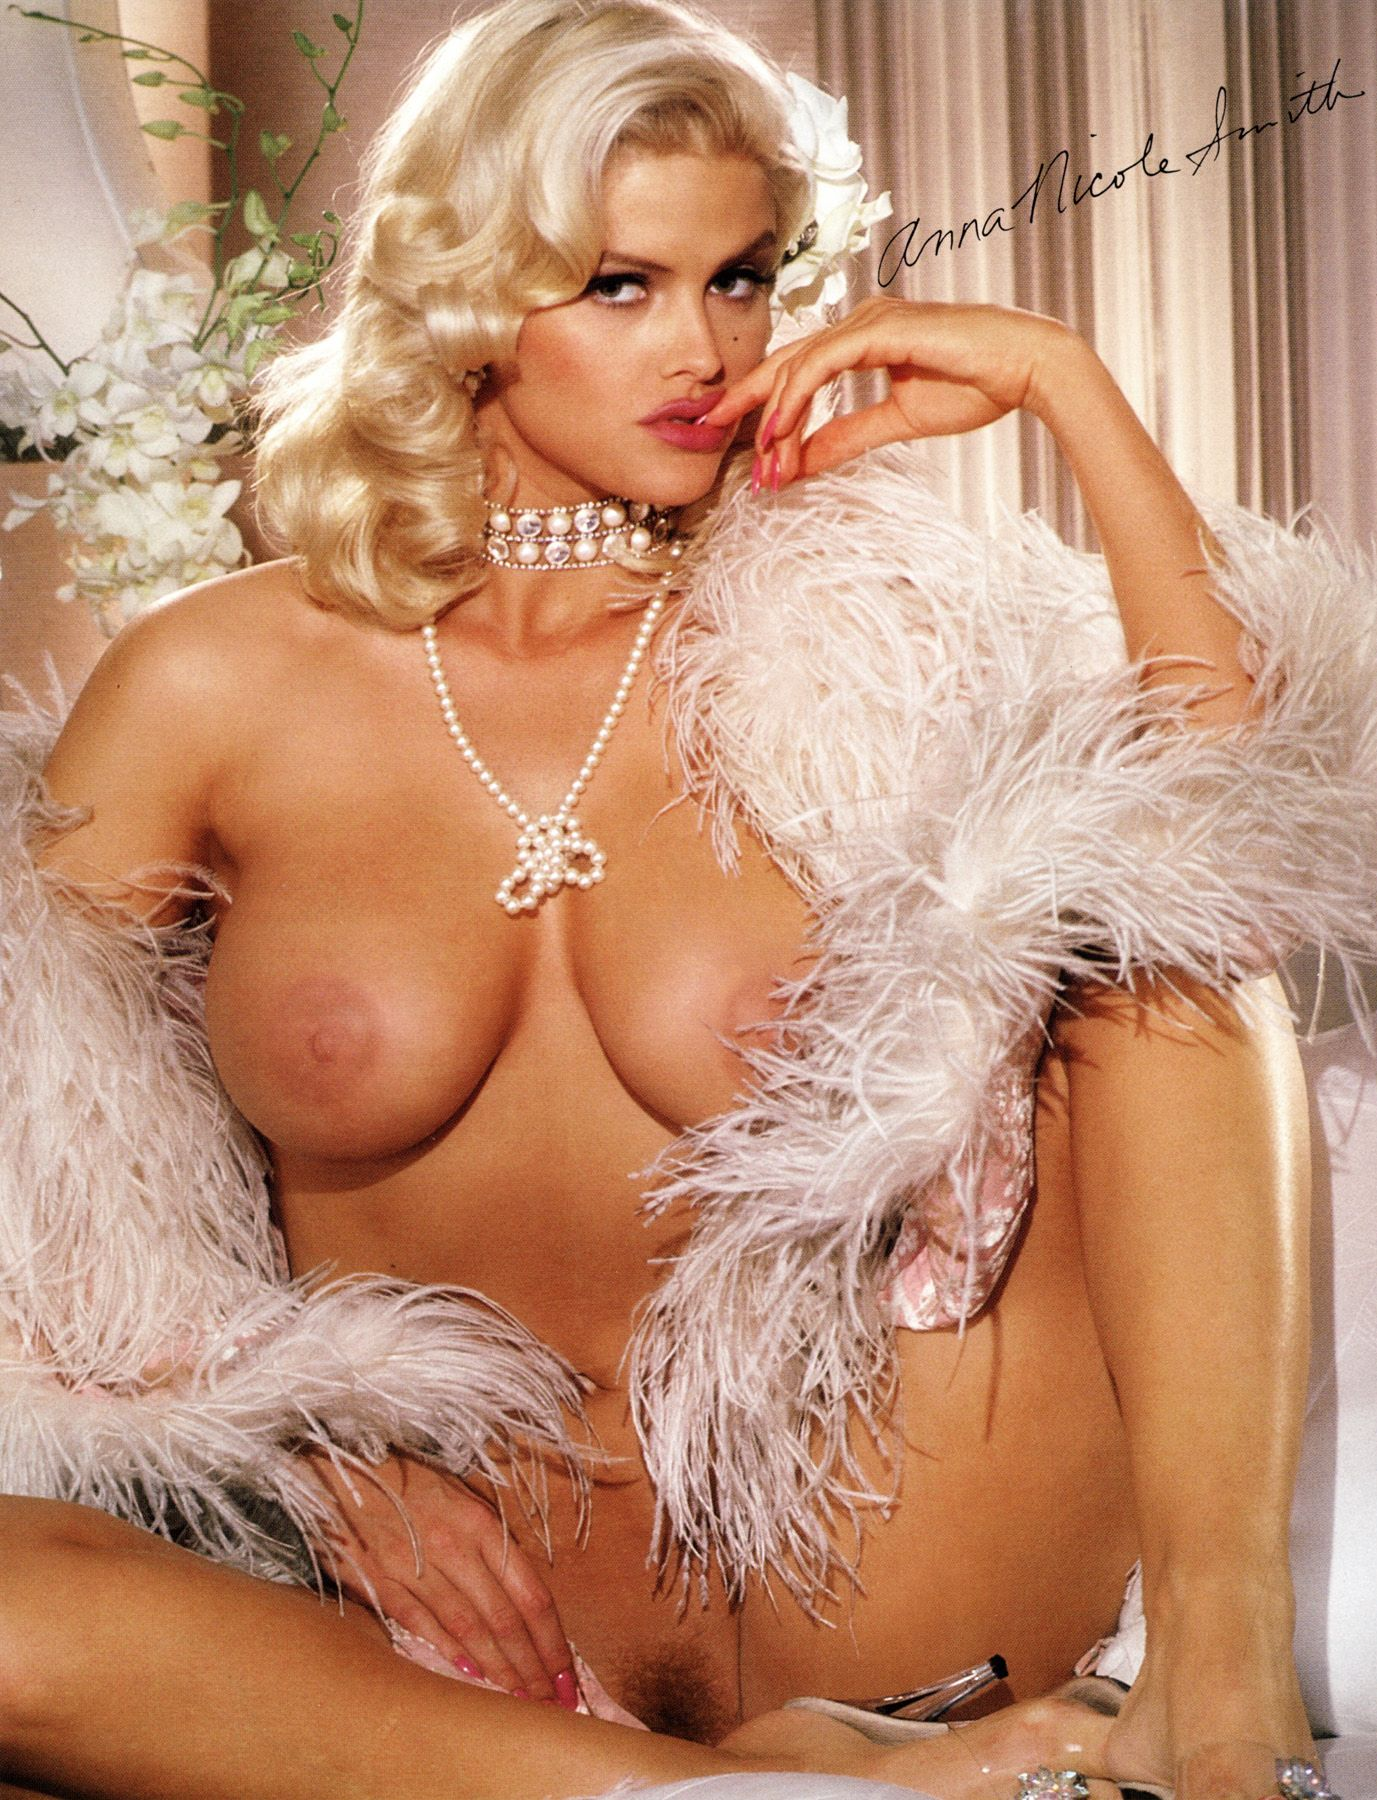 Anna nicole smith hardcore transexual you porn